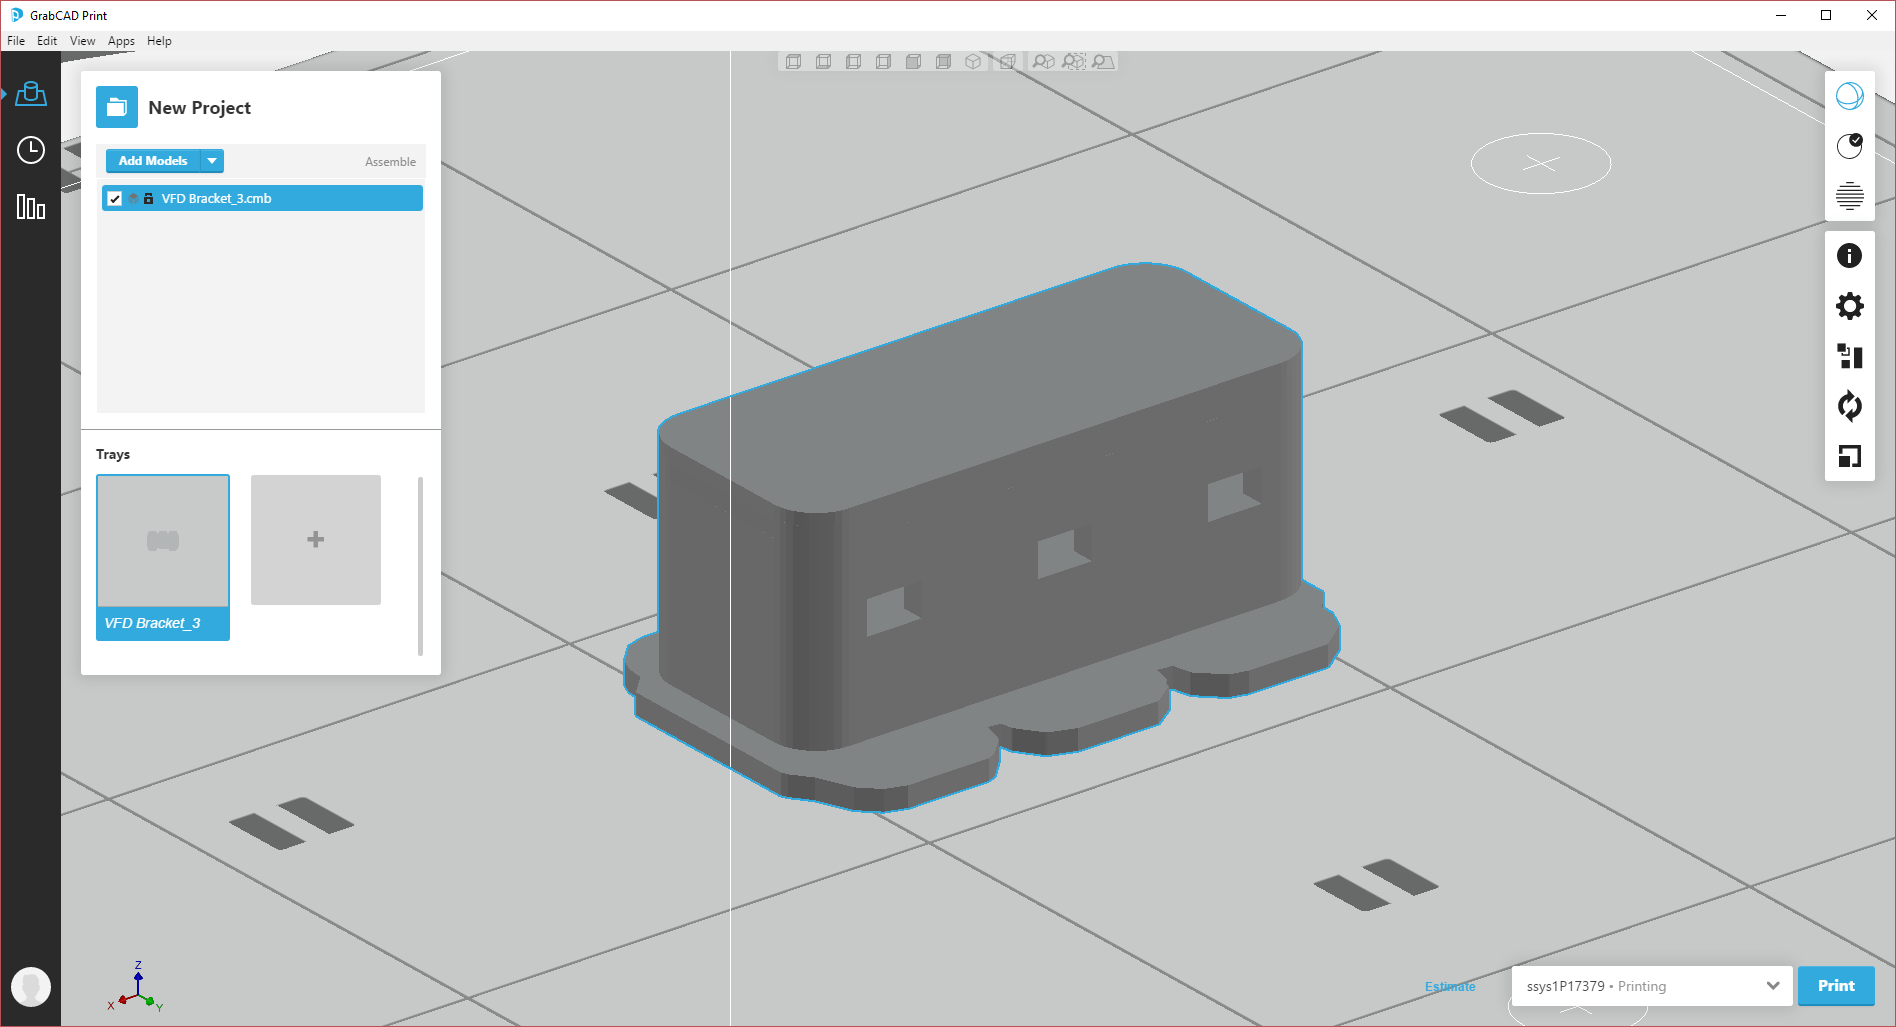 Announcing the new GrabCAD Print SOLIDWORKS Add-in